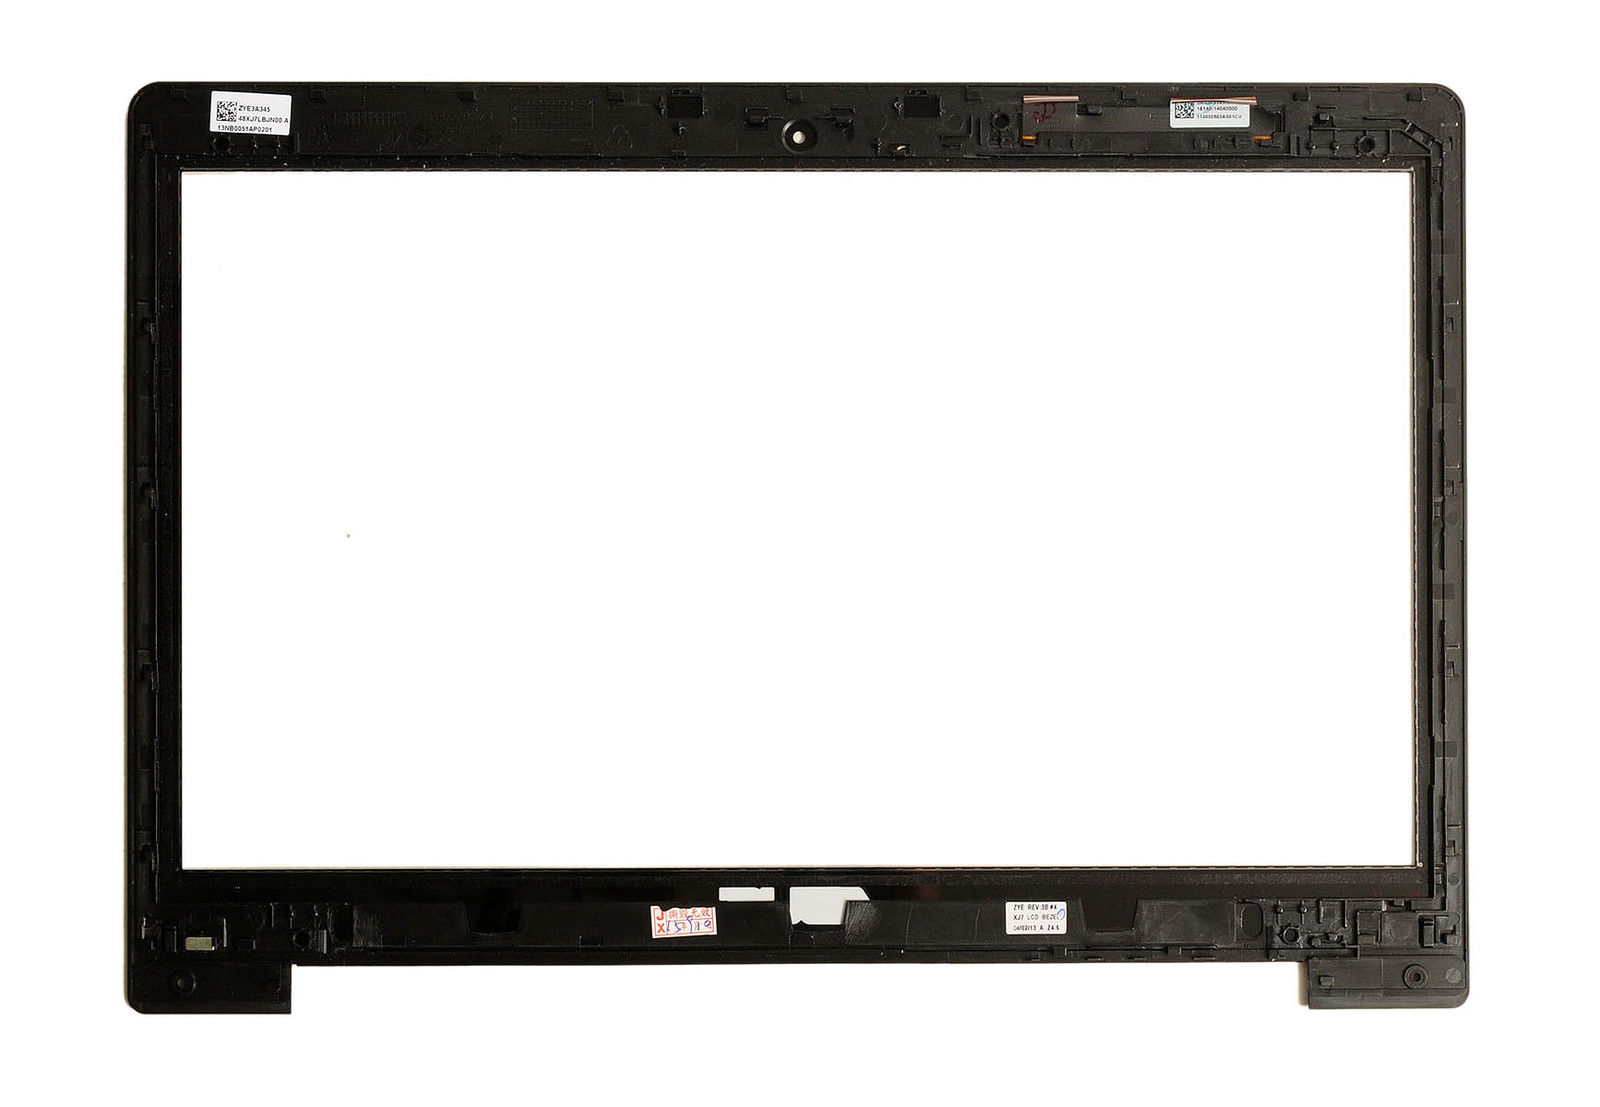 For ASUS VivoBook S400 S400CA 14 Front Touch Screen Digitizer Panel Glass Sensor With Frame TCP14F21 V1.1